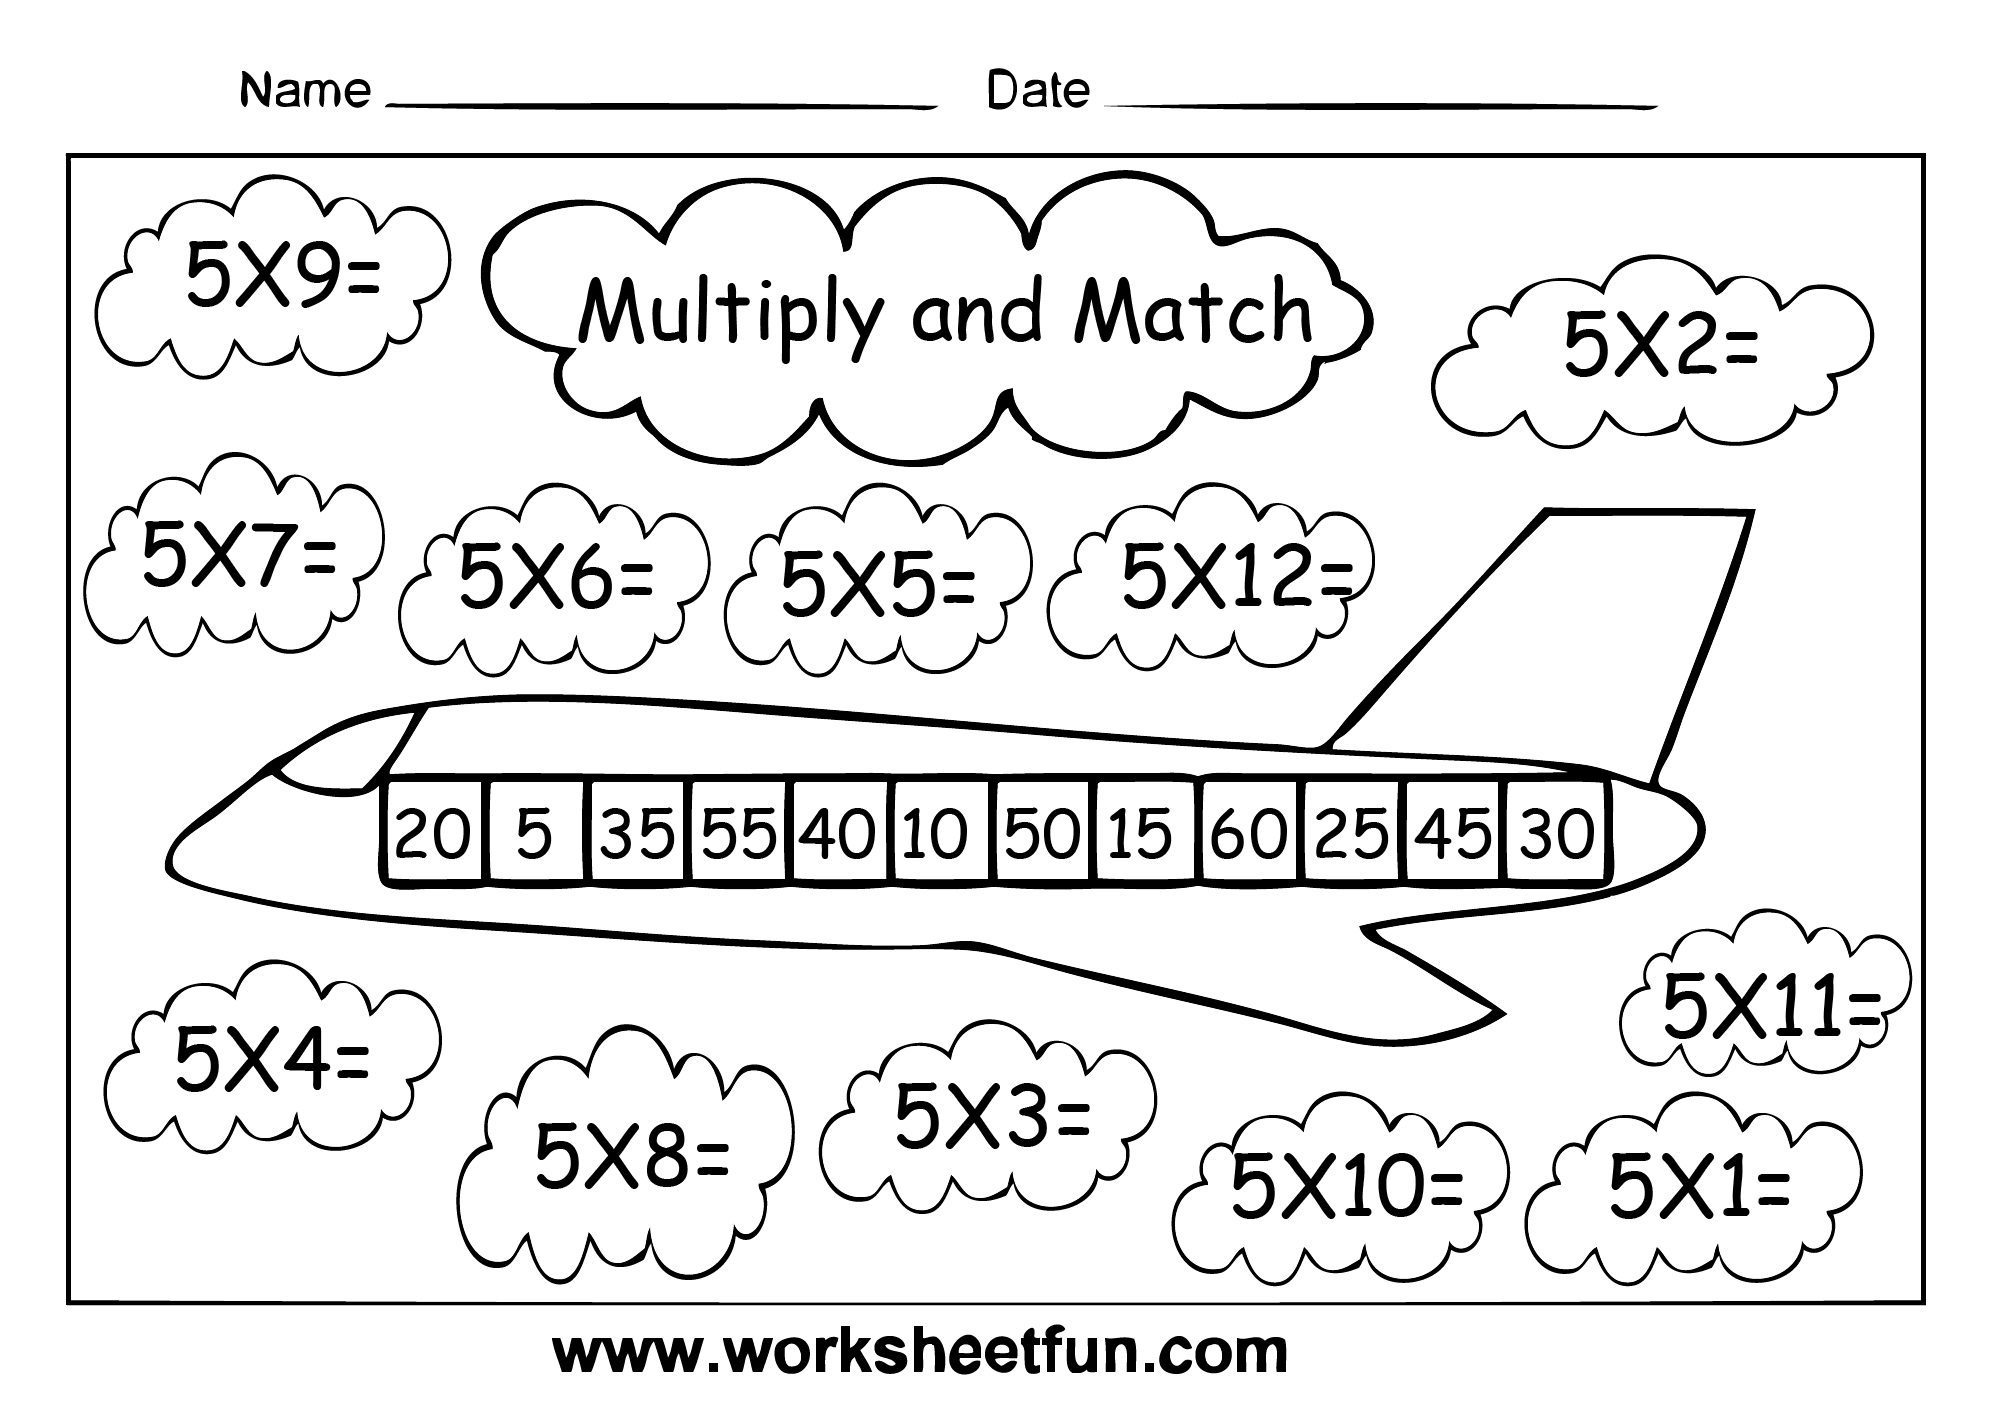 Multiply And Match Multiplication Activity Multiply By 2 3 4 5 6 7 8 And 9 Free